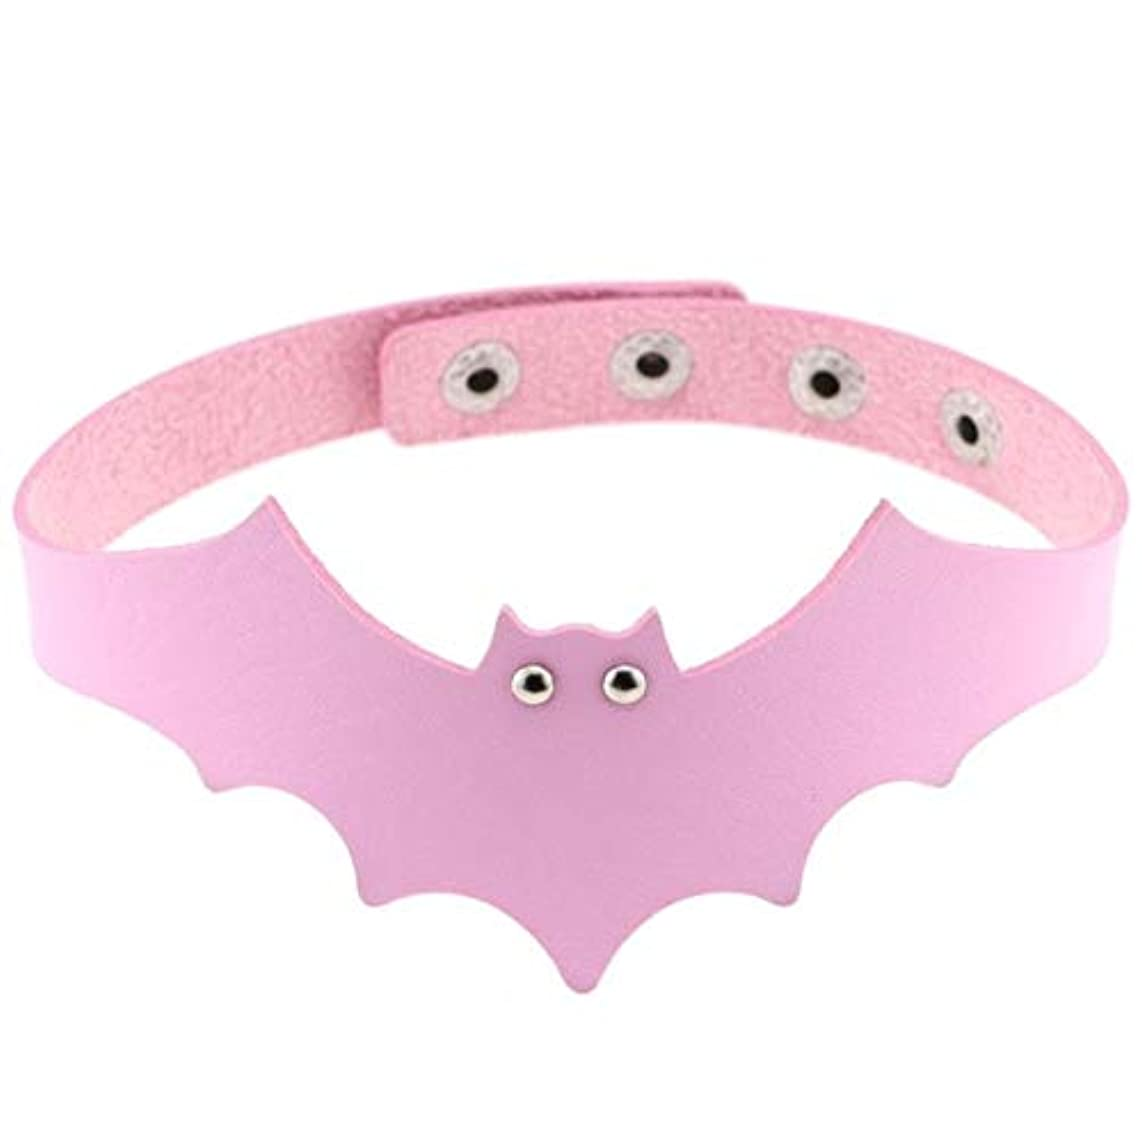 Halloween Cool PU Leather Bat Wing Choker Collar Gothic Necklace Women Punk Leather Harness Anime Necklaces Neck Chocker Jewelry